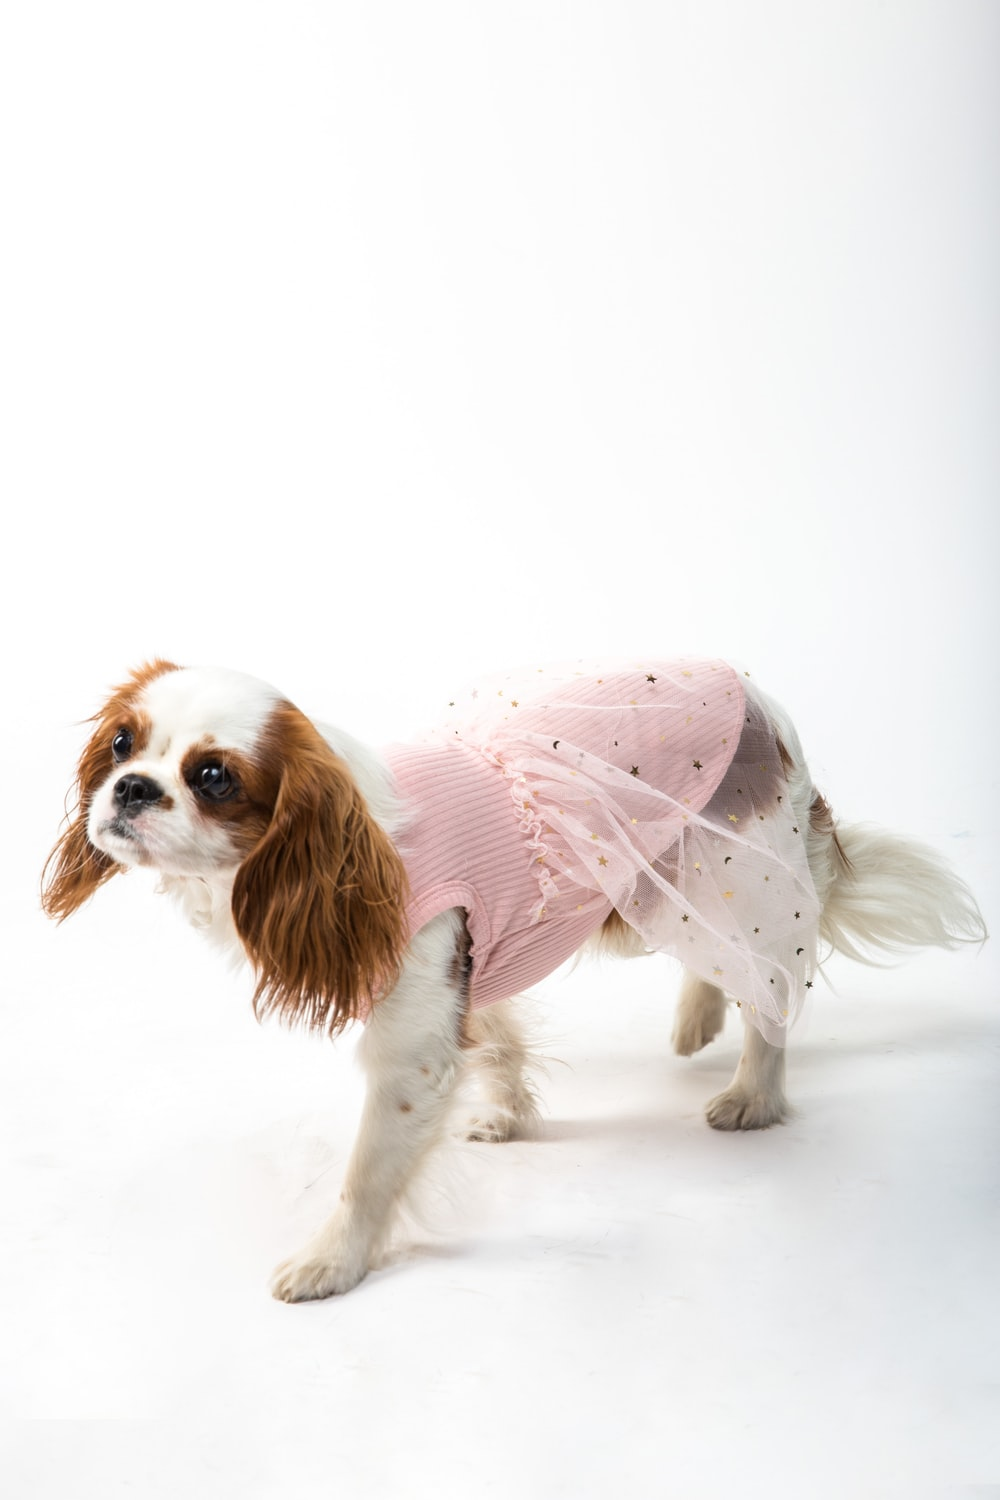 white and brown long coated small dog wearing pink dress